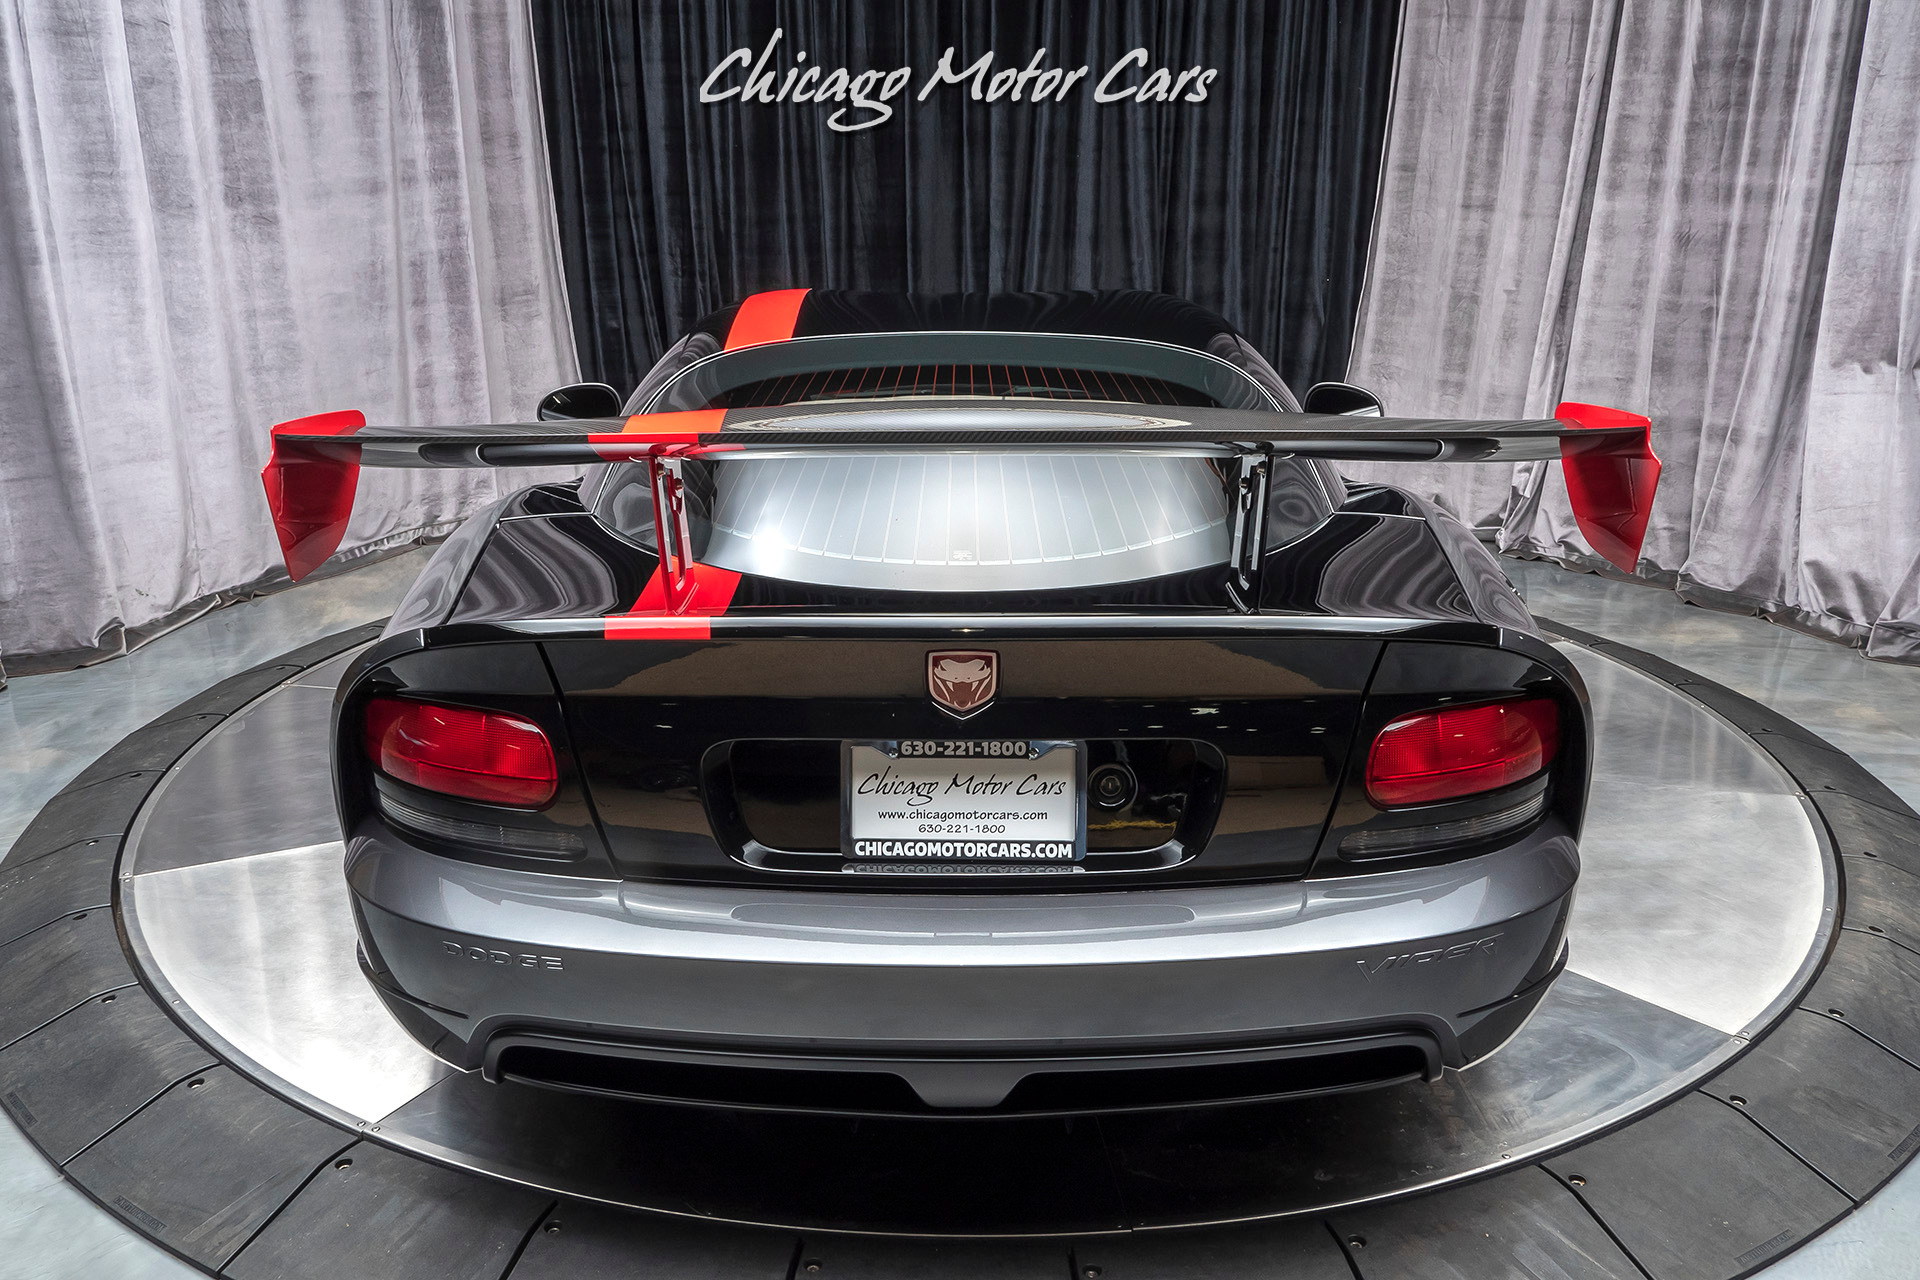 Used-2009-Dodge-Viper-ACR-Coupe-9k-Miles-Collector-Quality